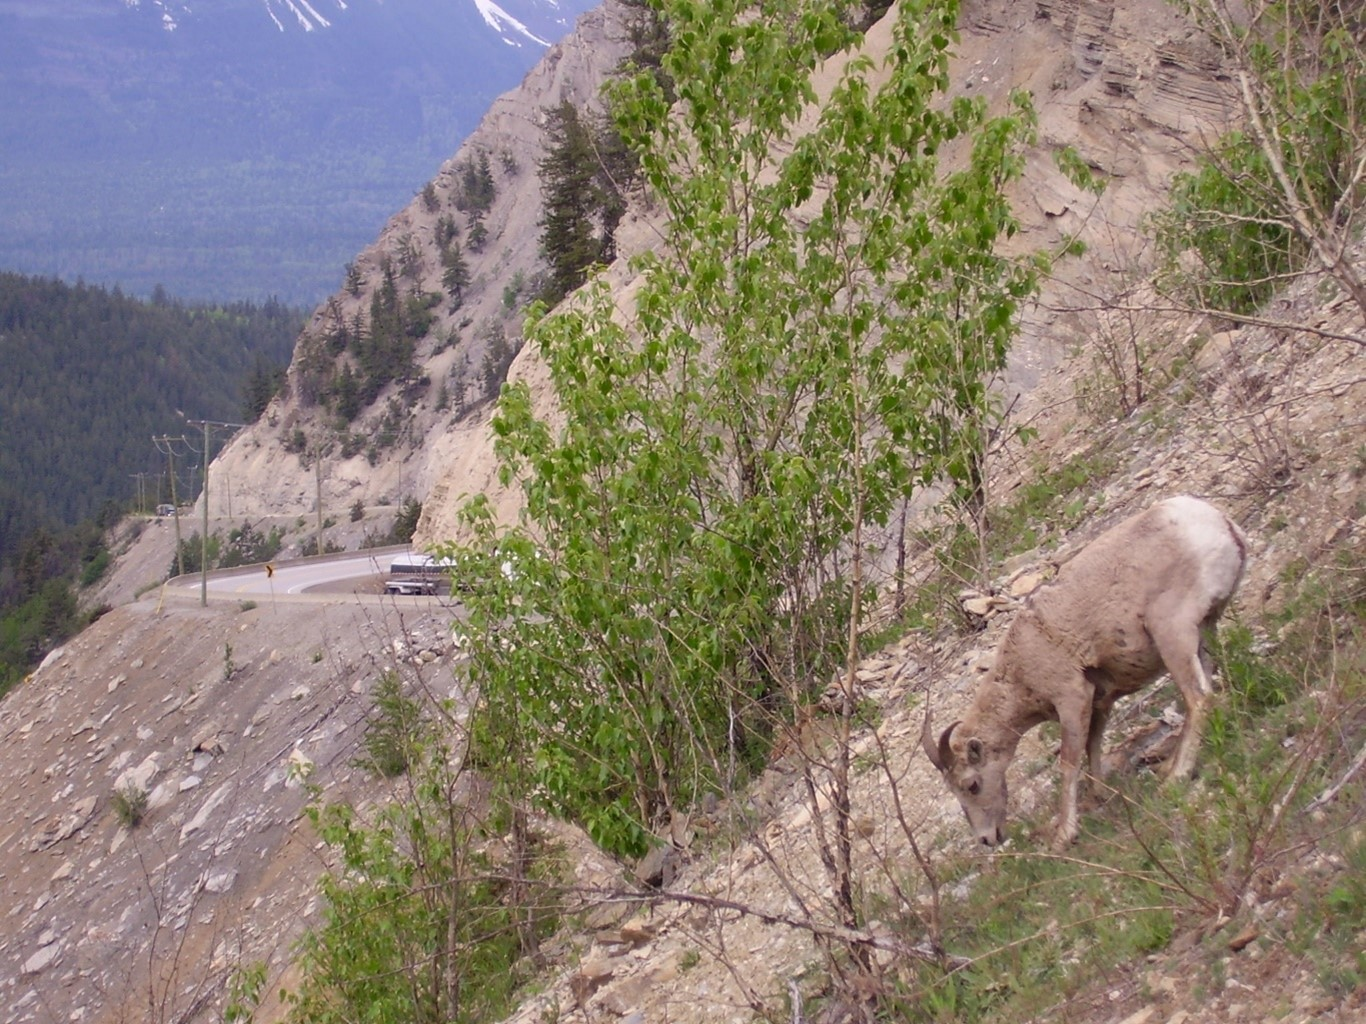 Wildlife grazes alongside the Kicking Horse Canyon stretch of BC Highway 1 - the Trans Canada